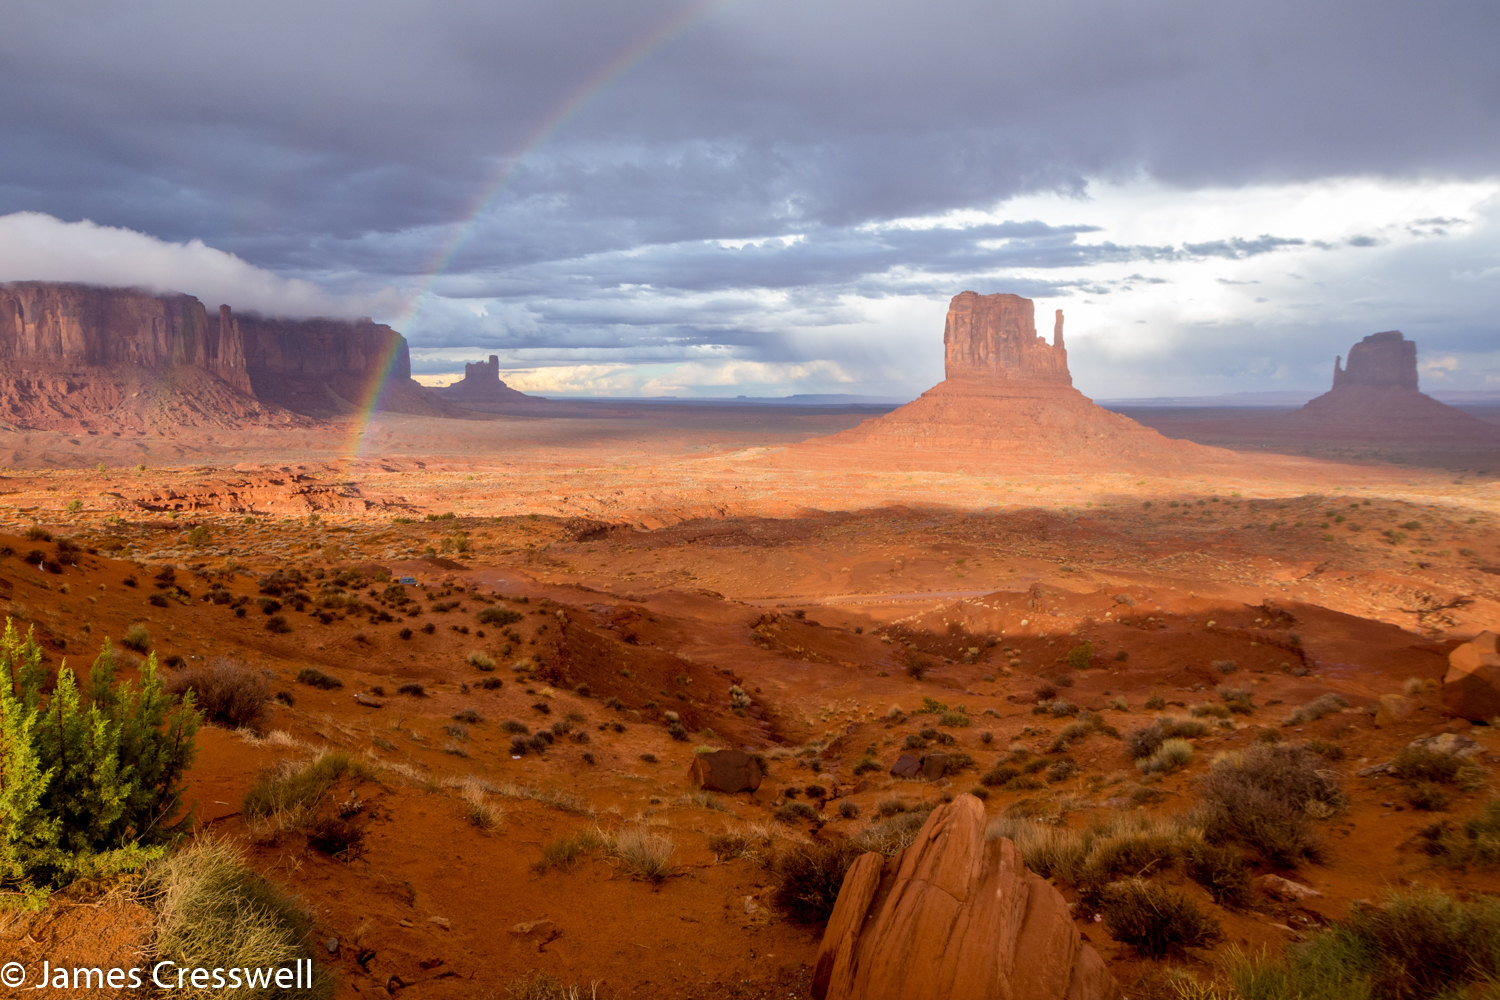 A photograph of rock towers in the desert in Monument Valley taken on a GeoWorld Travel USA geology trip, tour and holiday